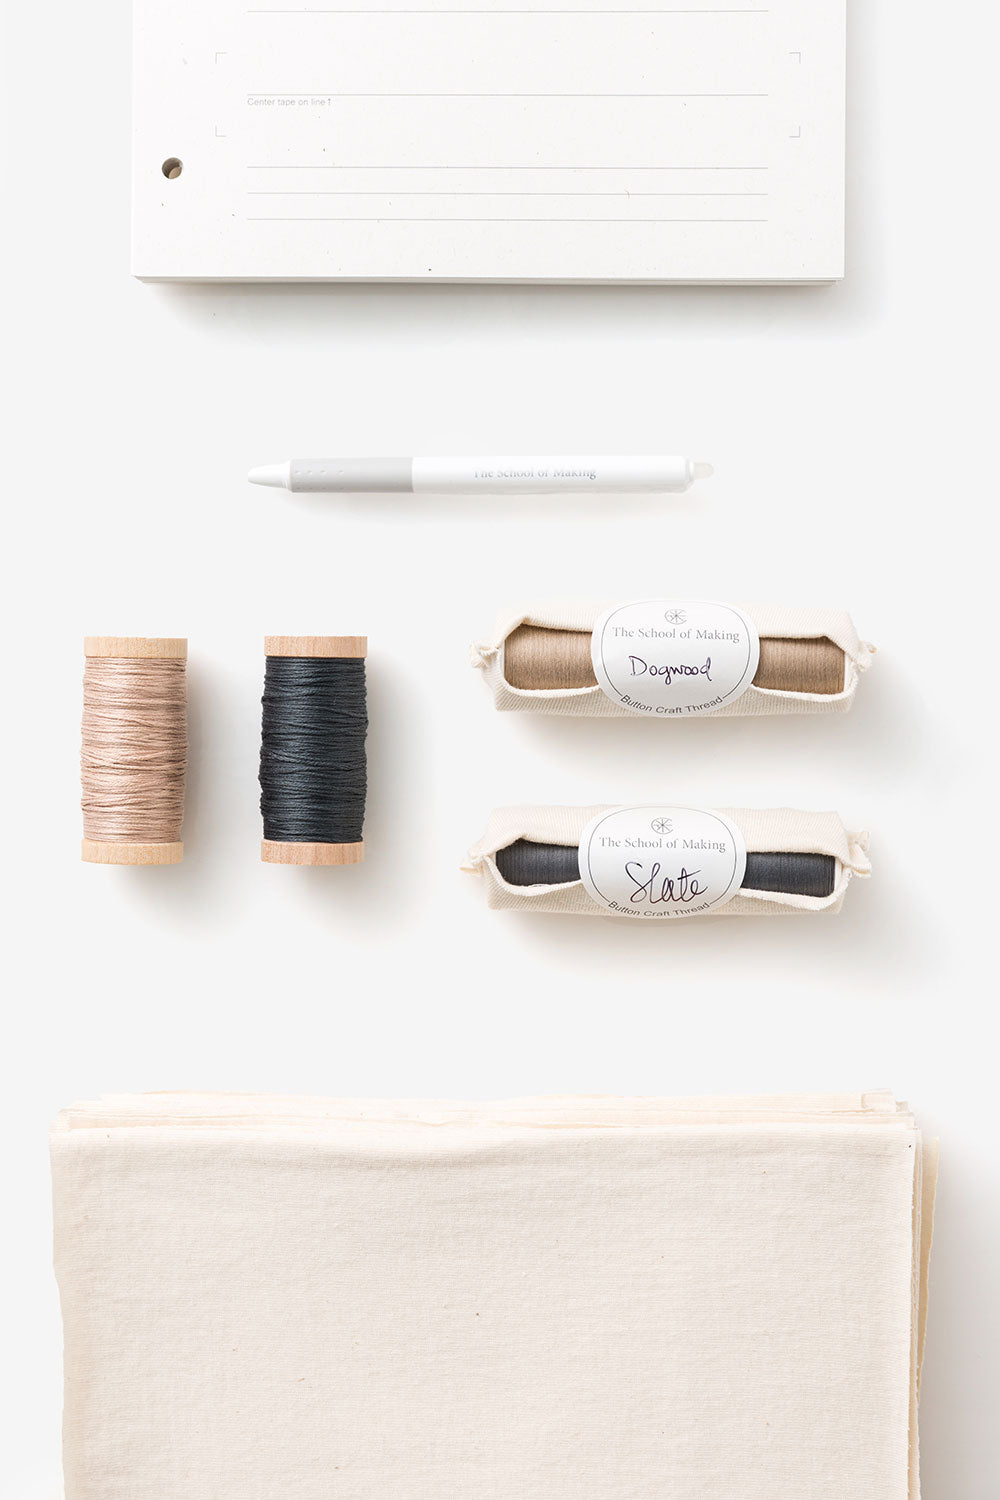 The School of Making Embroidery Sampler Maker Supplies for Embellishing and Sewing Handmade Clothing